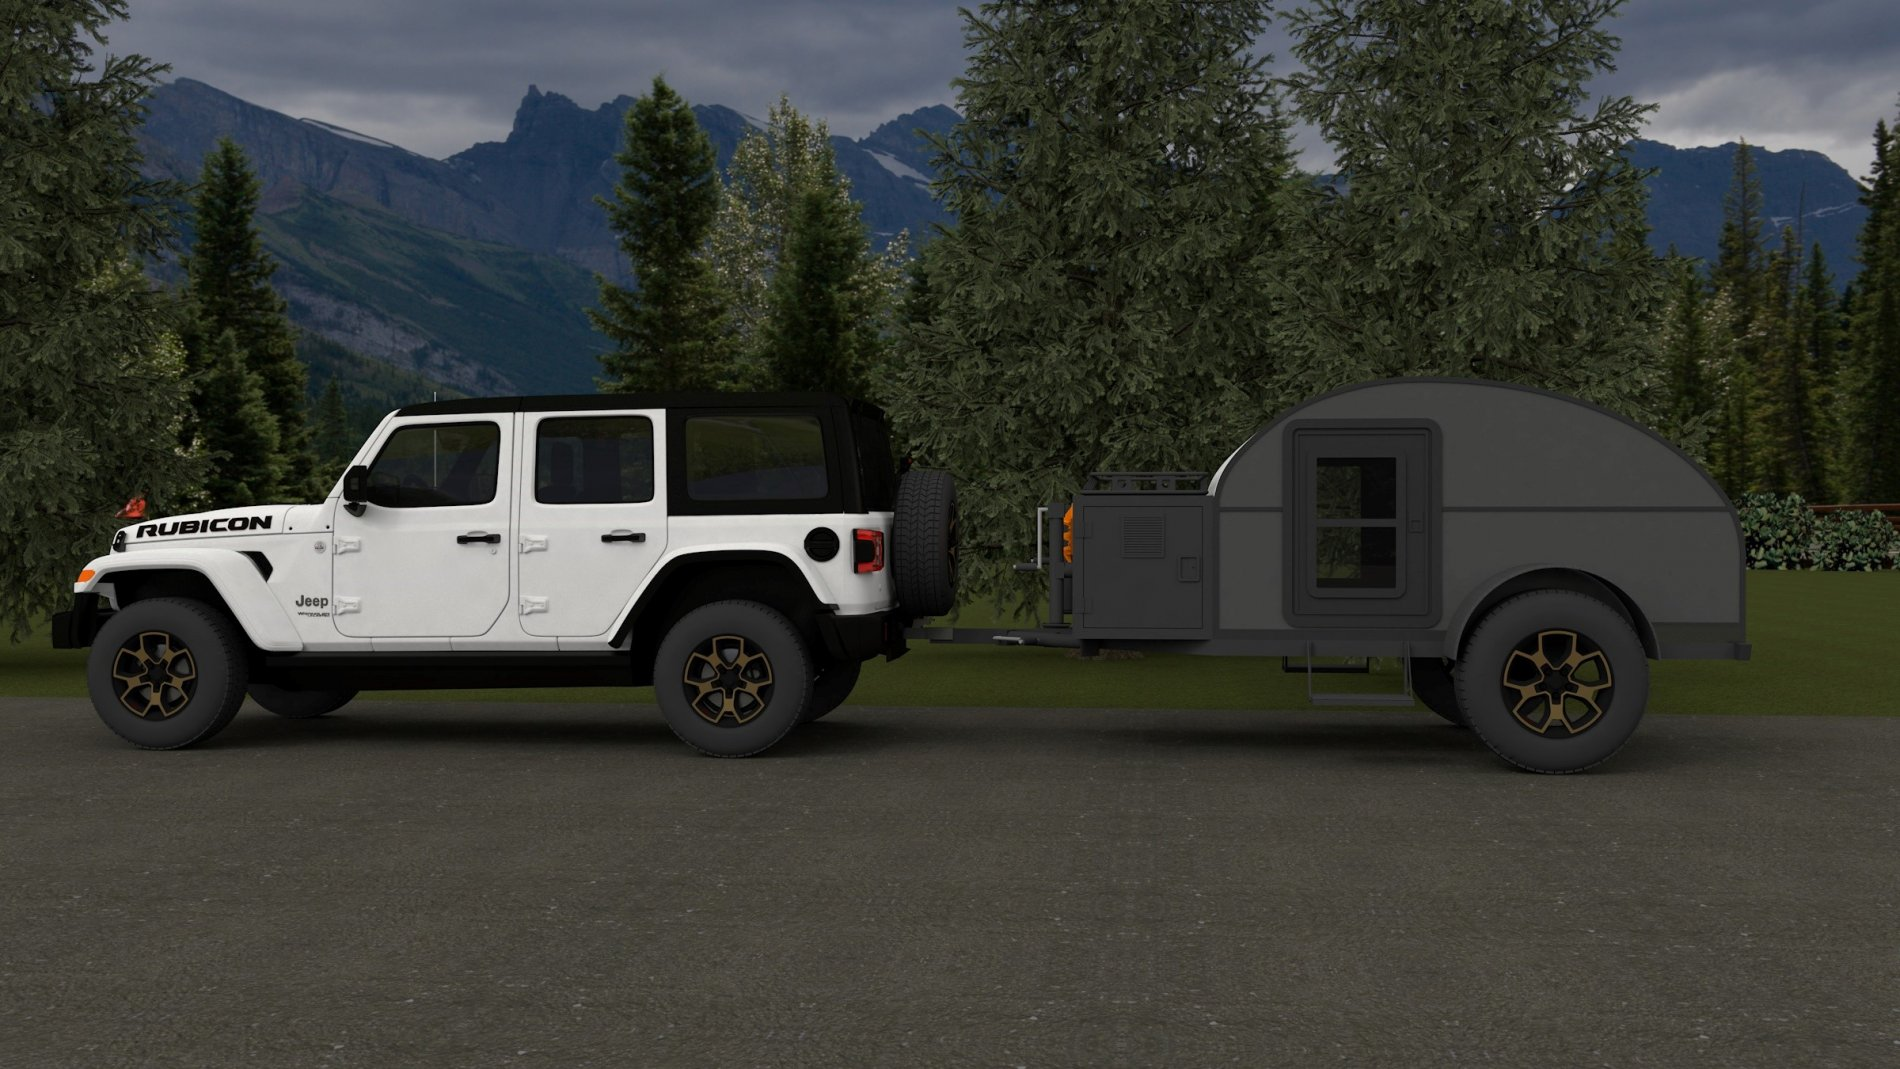 jEEP + TRAILER - VIEW 2 - FINAL.jpg